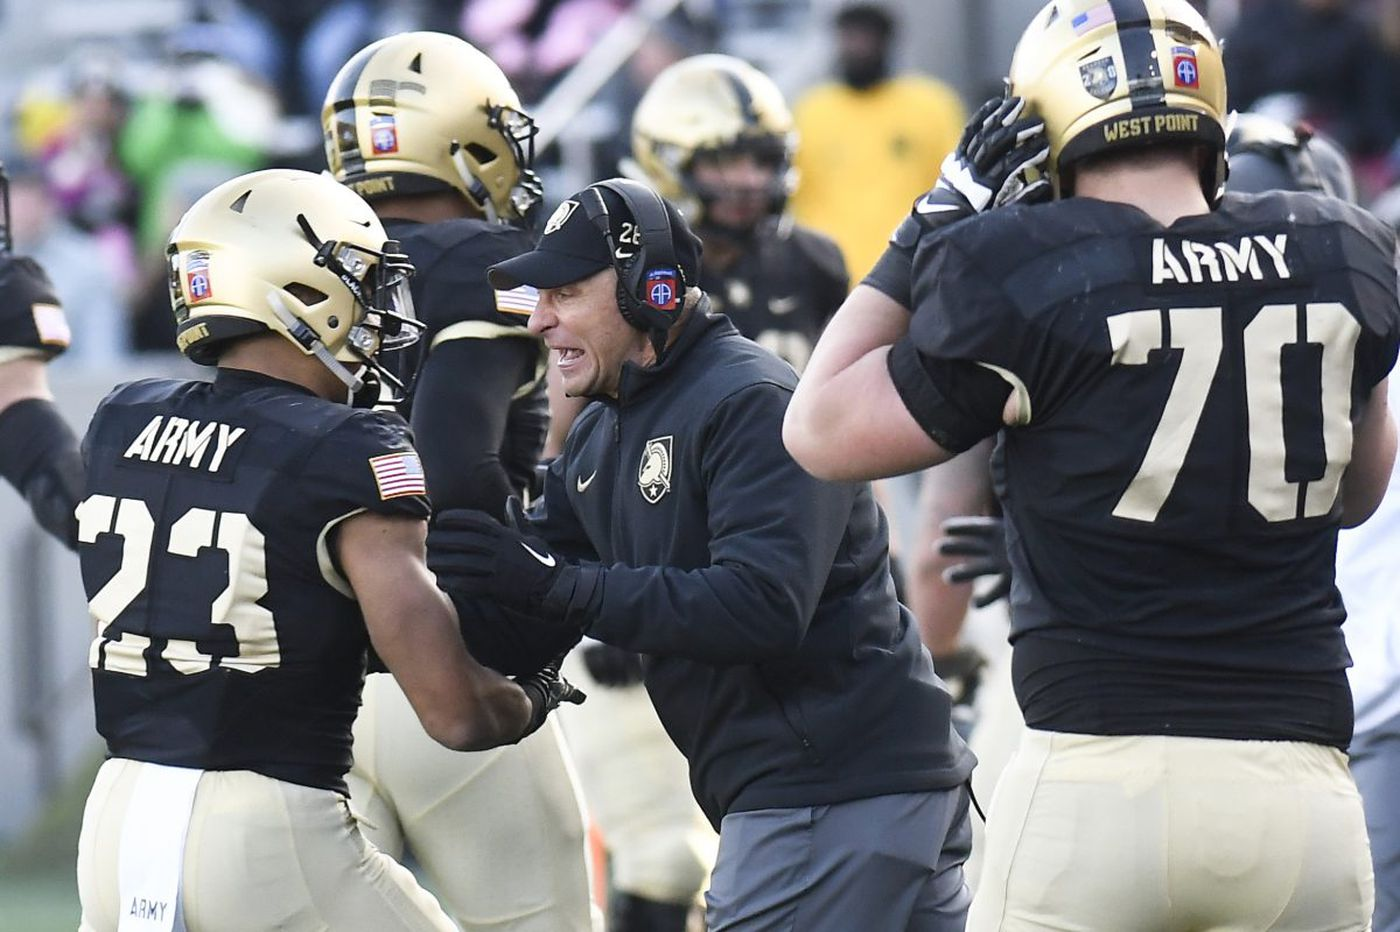 With Navy streak history, confident Army goes for back-to-back wins